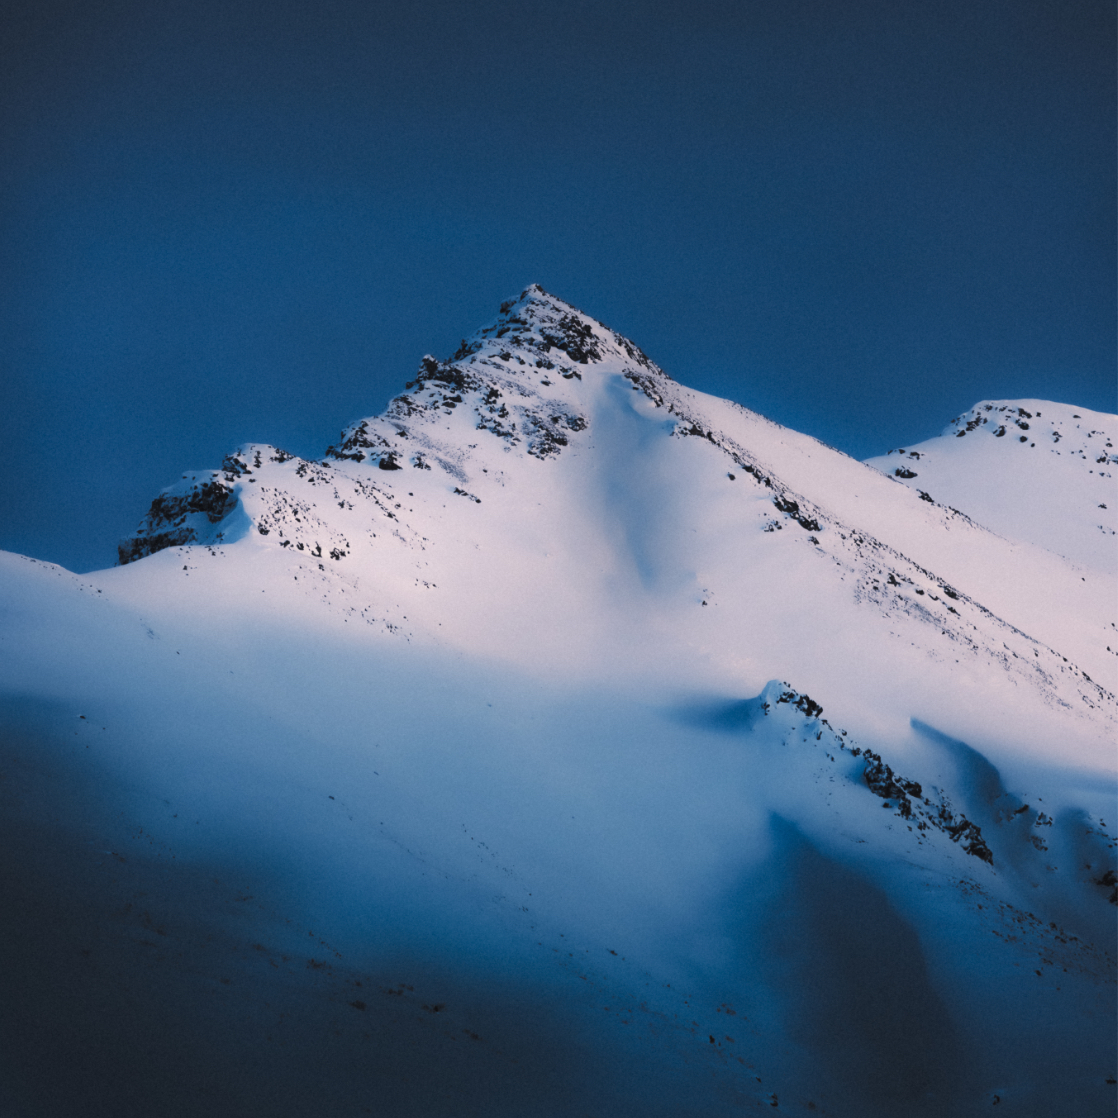 a snow covered mountains with shadows